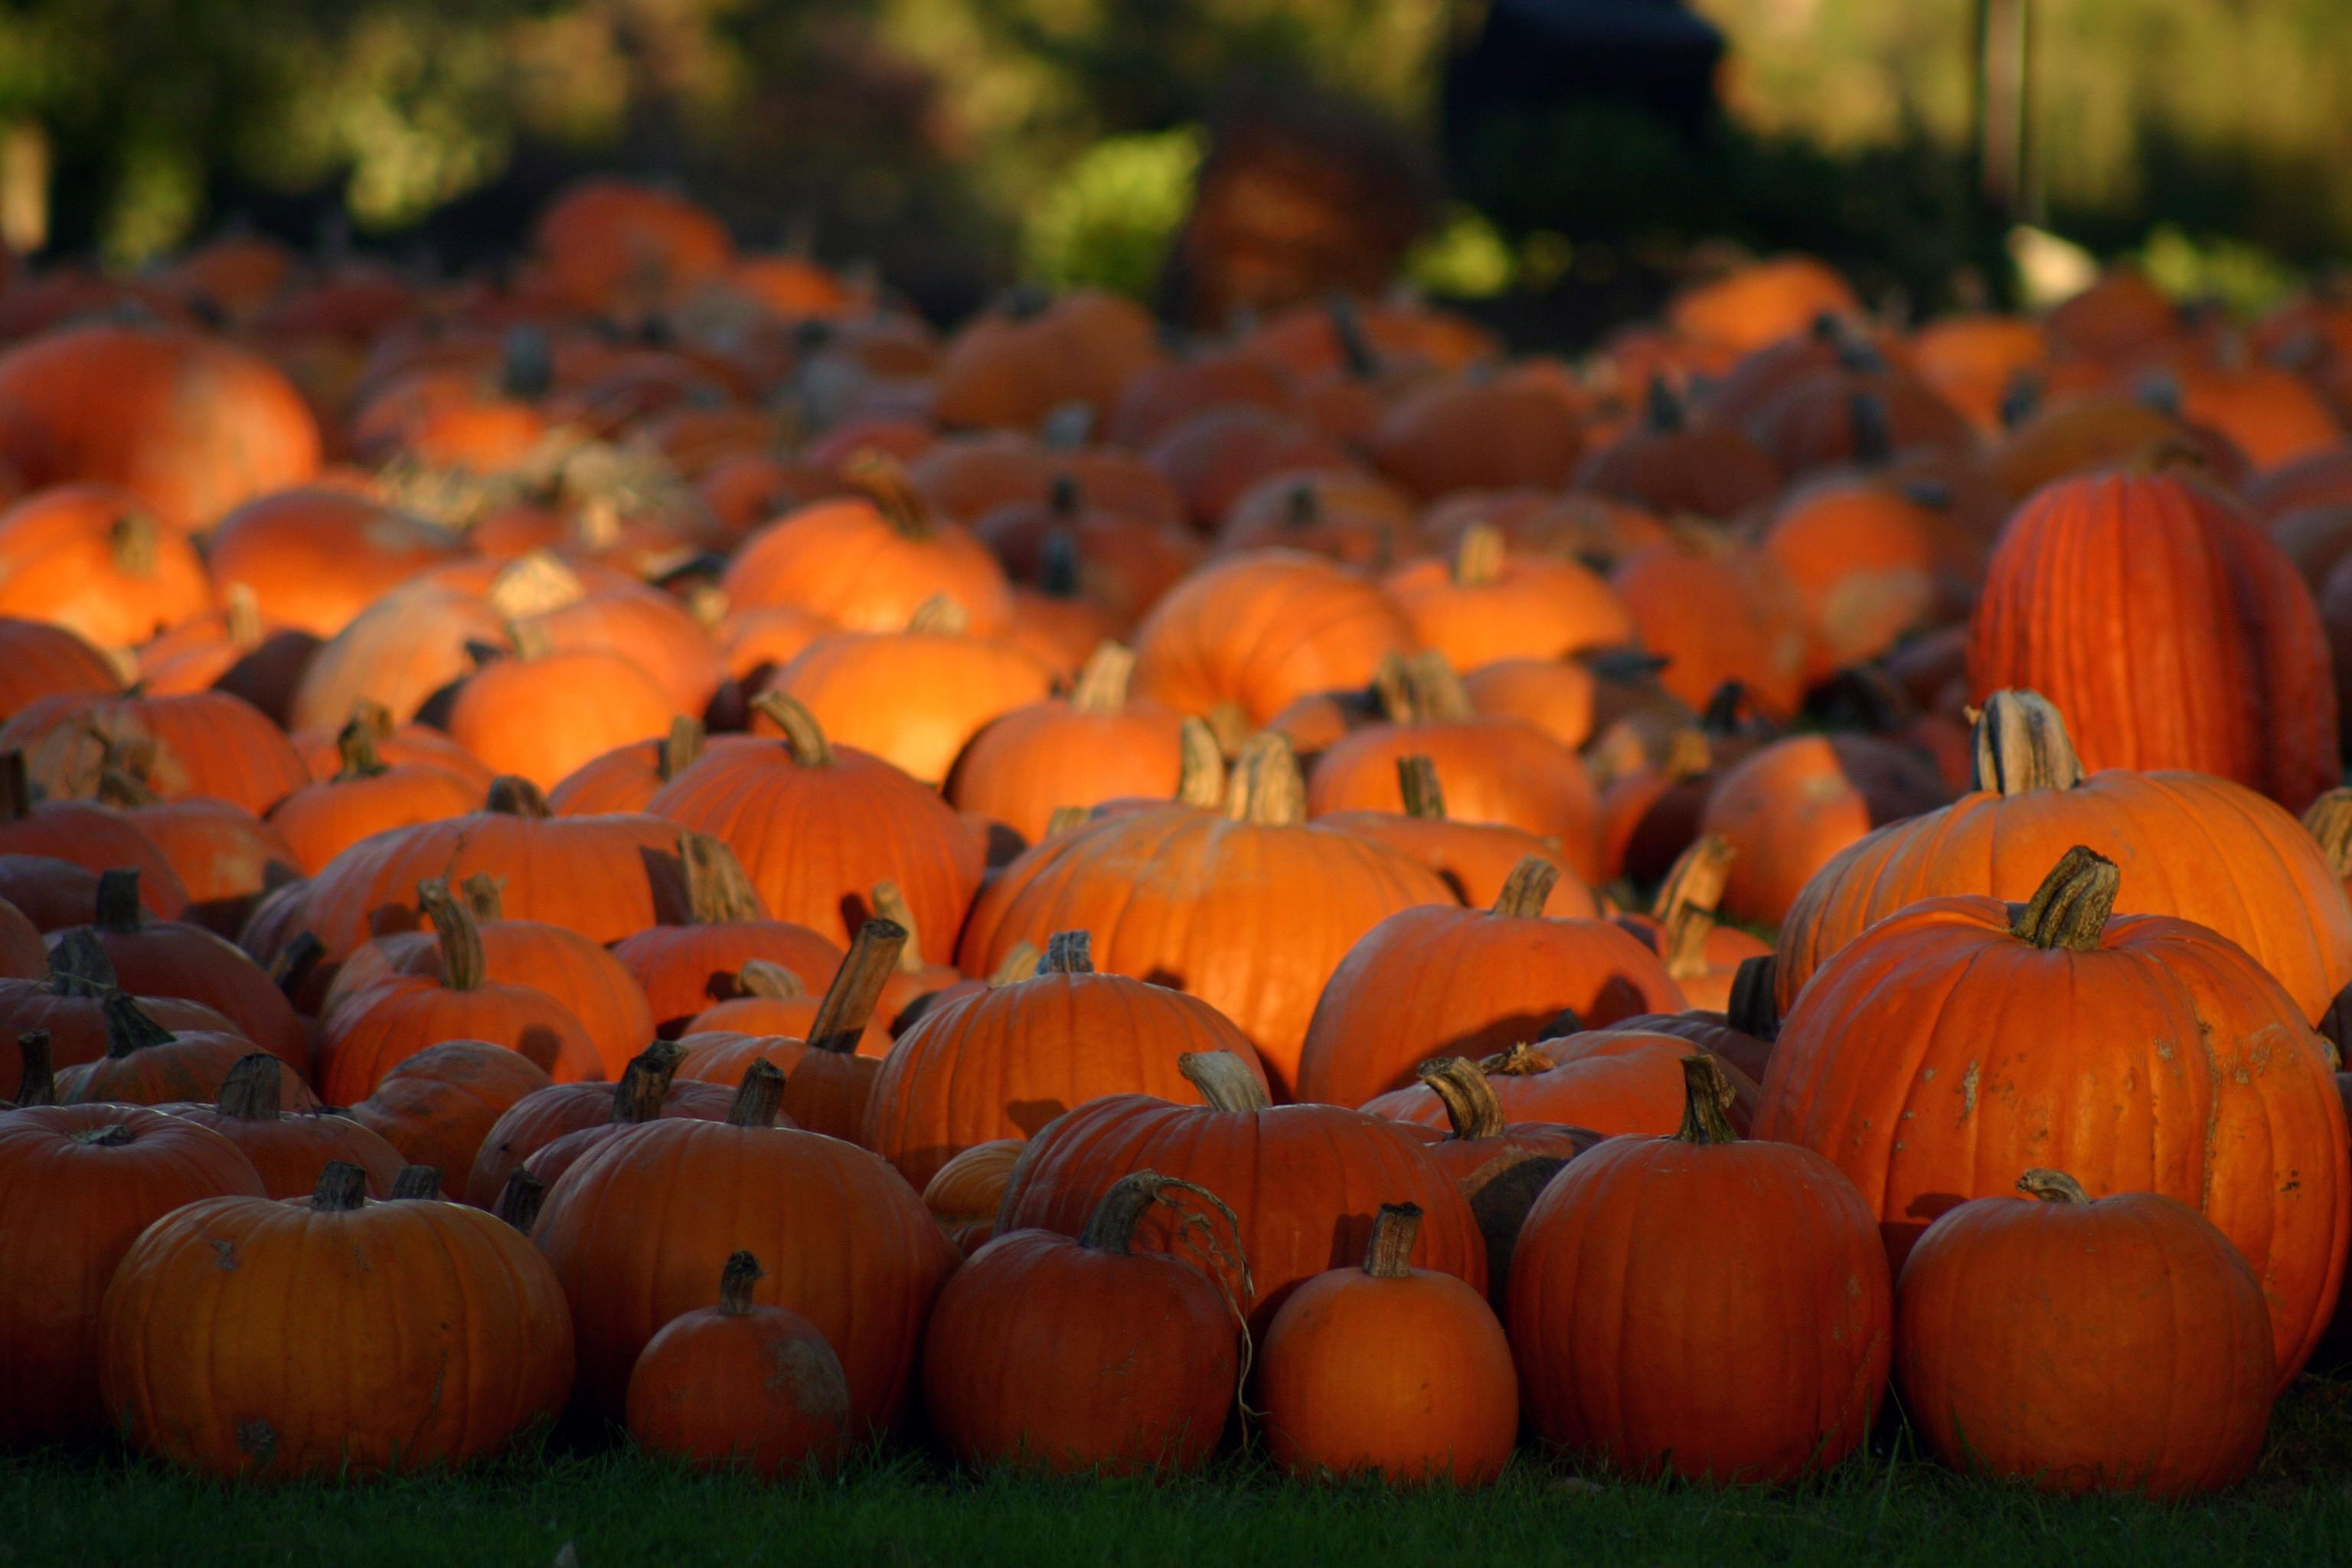 Get your pumpkin fix with these Halloween worthy wallpapers 3072x2048